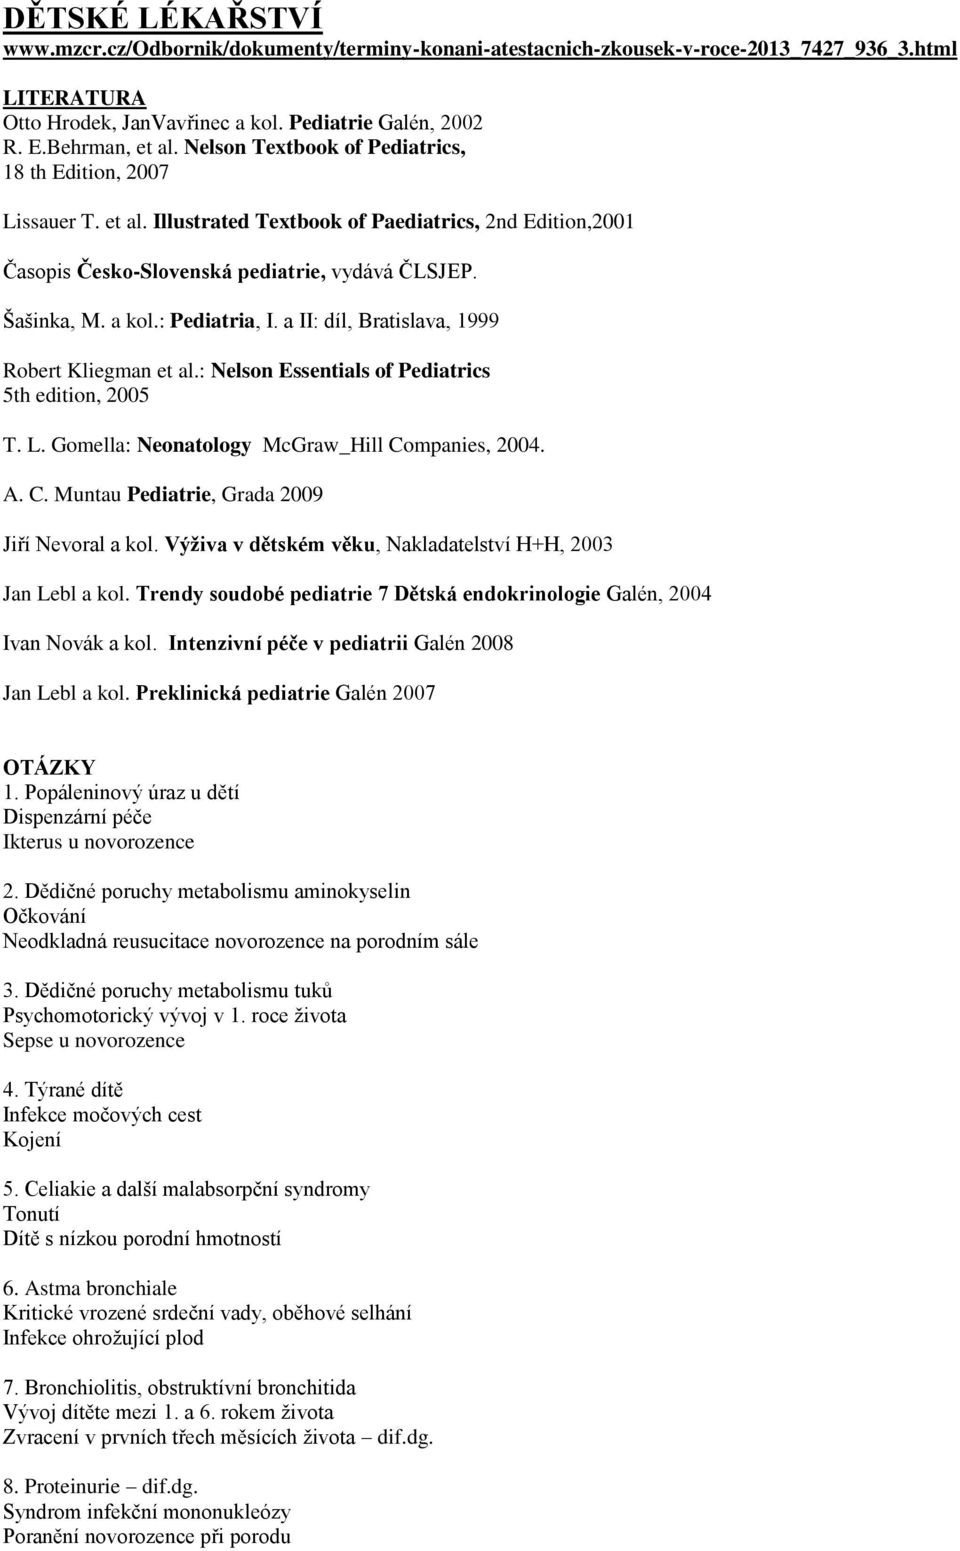 : Pediatria, I. a II: díl, Bratislava, 1999 Robert Kliegman et al.: Nelson Essentials of Pediatrics 5th edition, 2005 T. L. Gomella: Neonatology McGraw_Hill Co